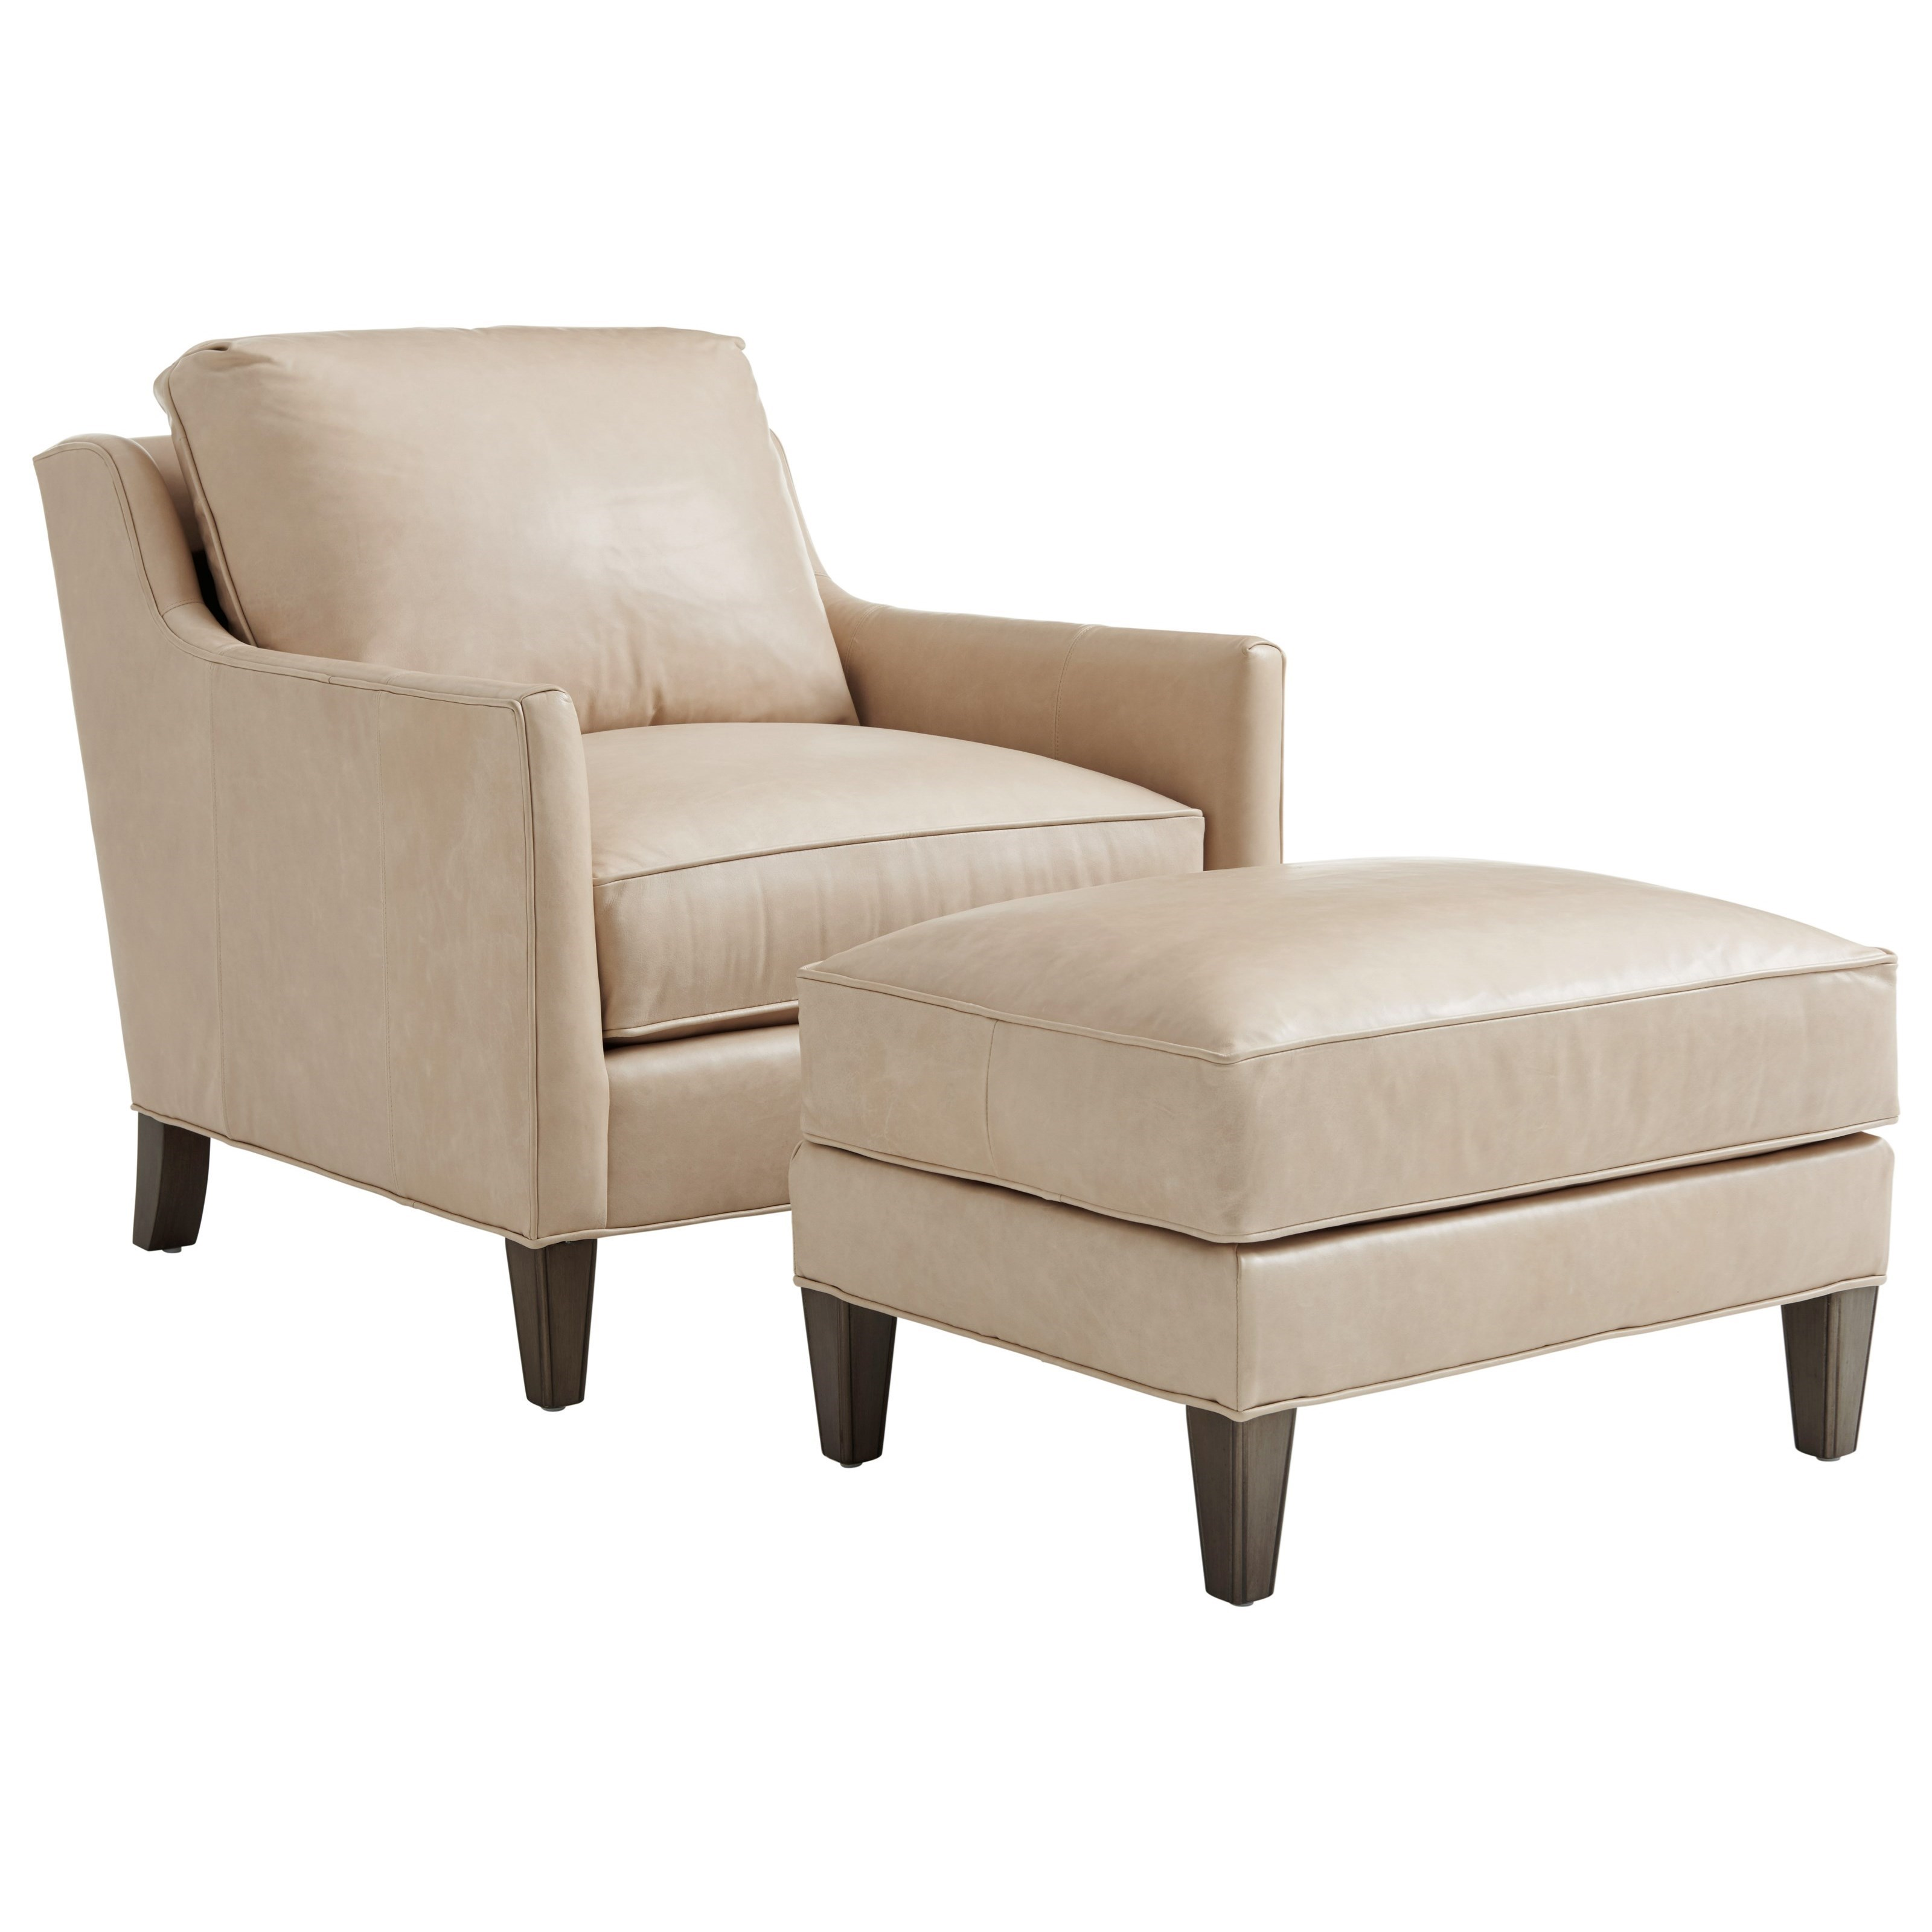 Lexington Ariana Turin Contemporary Chair And Ottoman